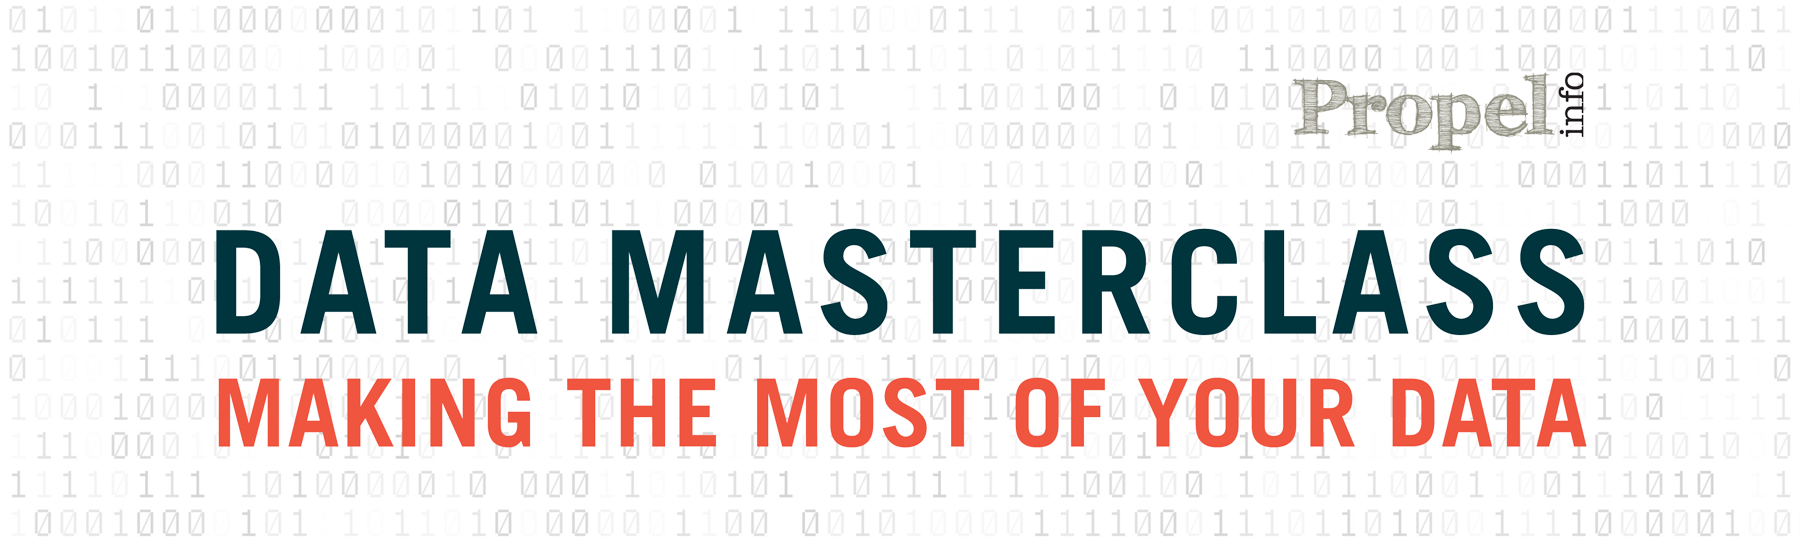 Data Masterclass: Making the most of your data